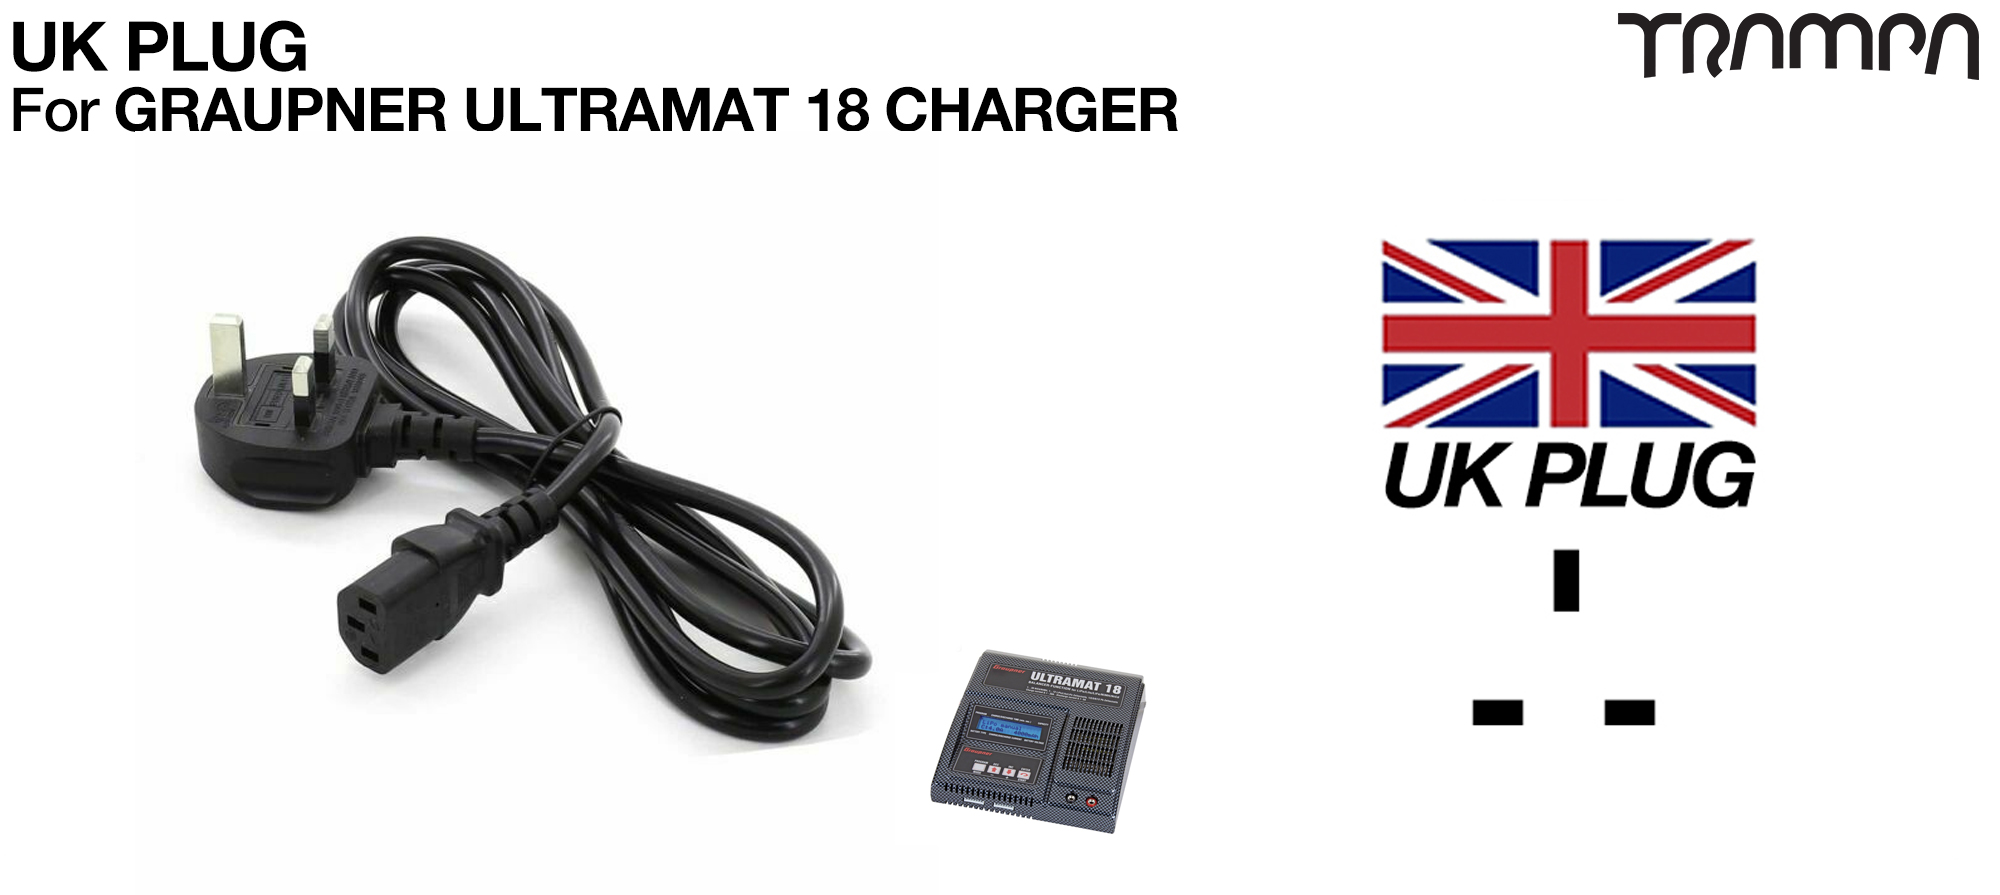 UK Plug for Graupner charger